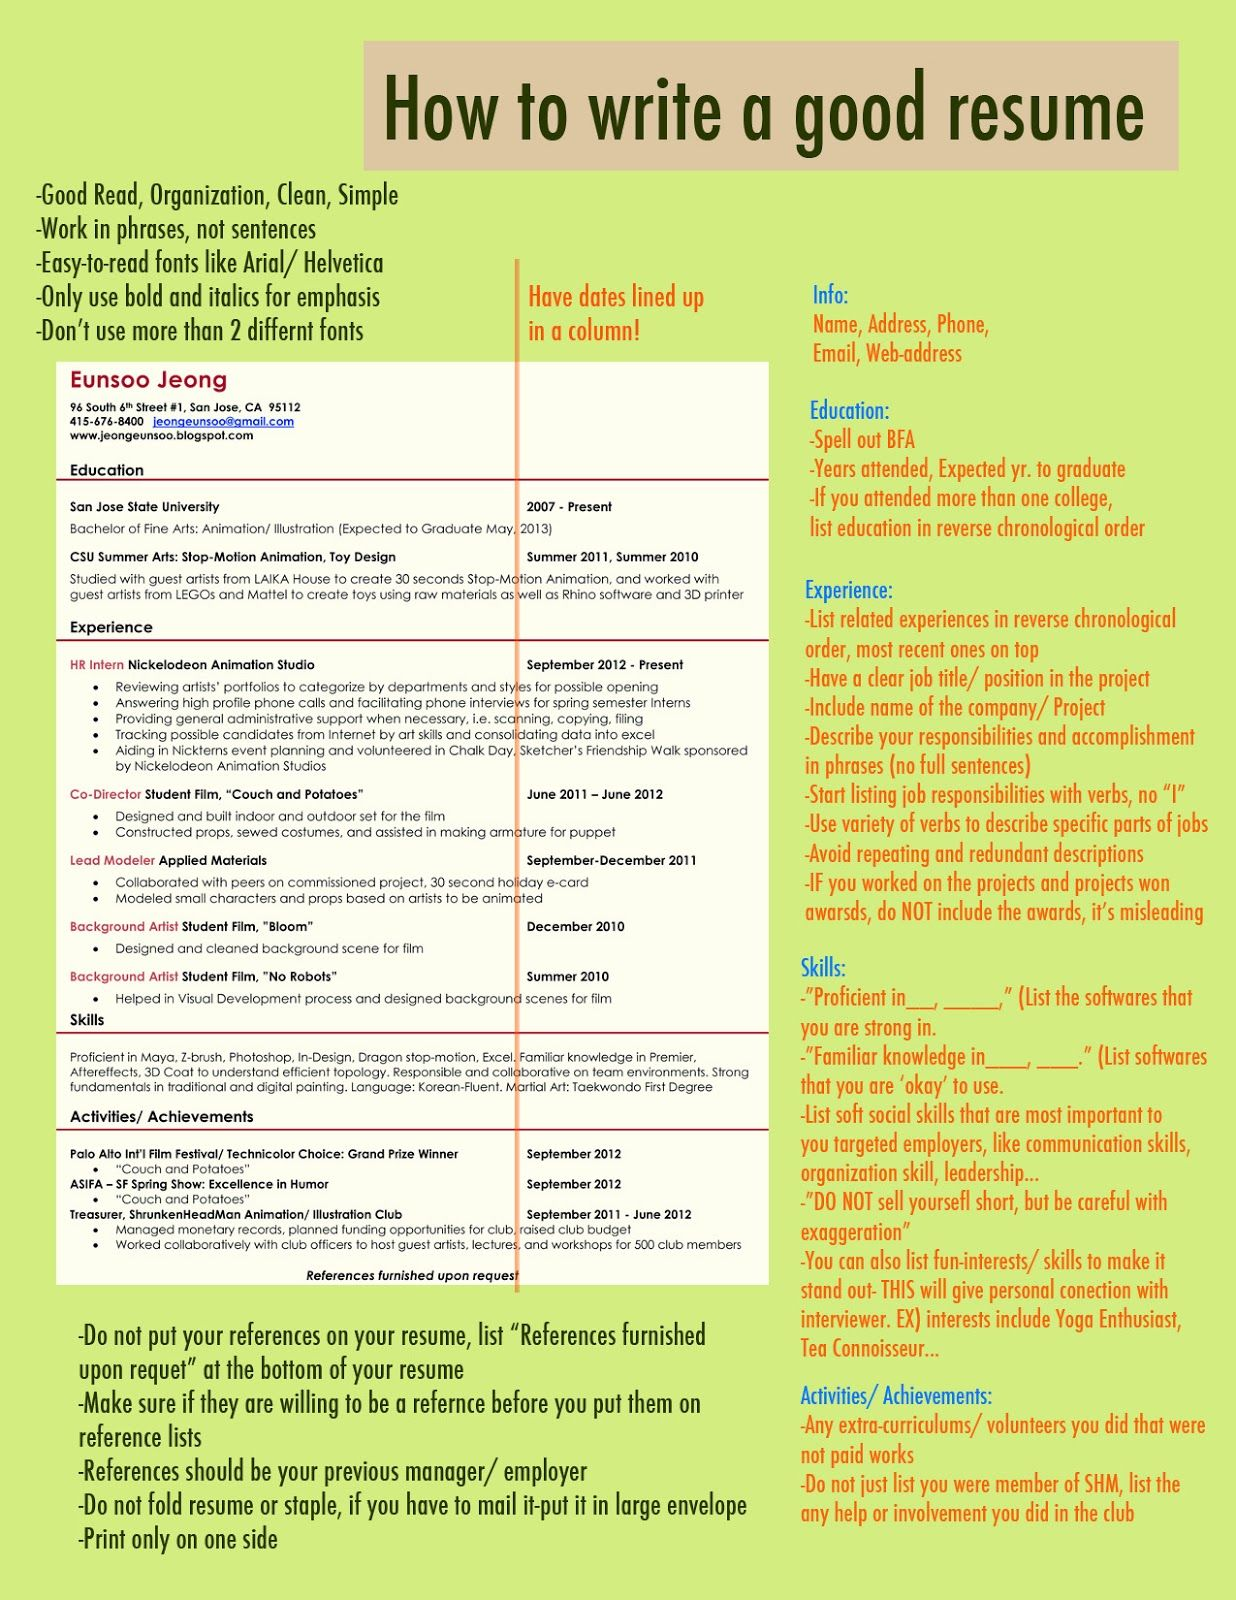 Staple resume and references vocabulary for education essay